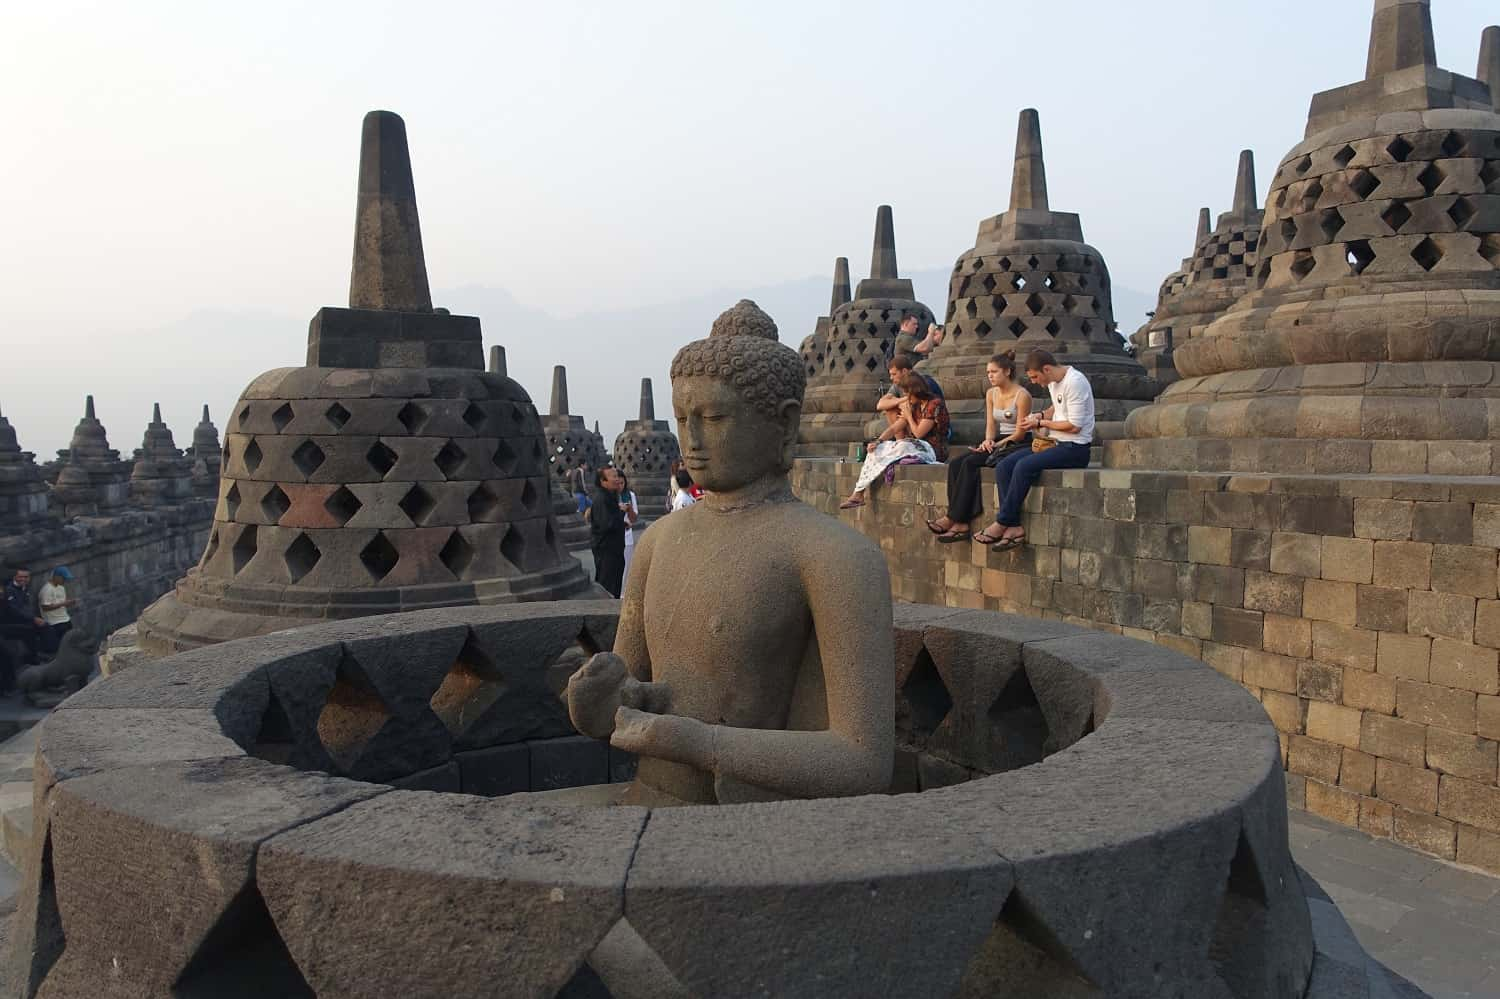 Buddha image at the top of Borobudur, Indonesia